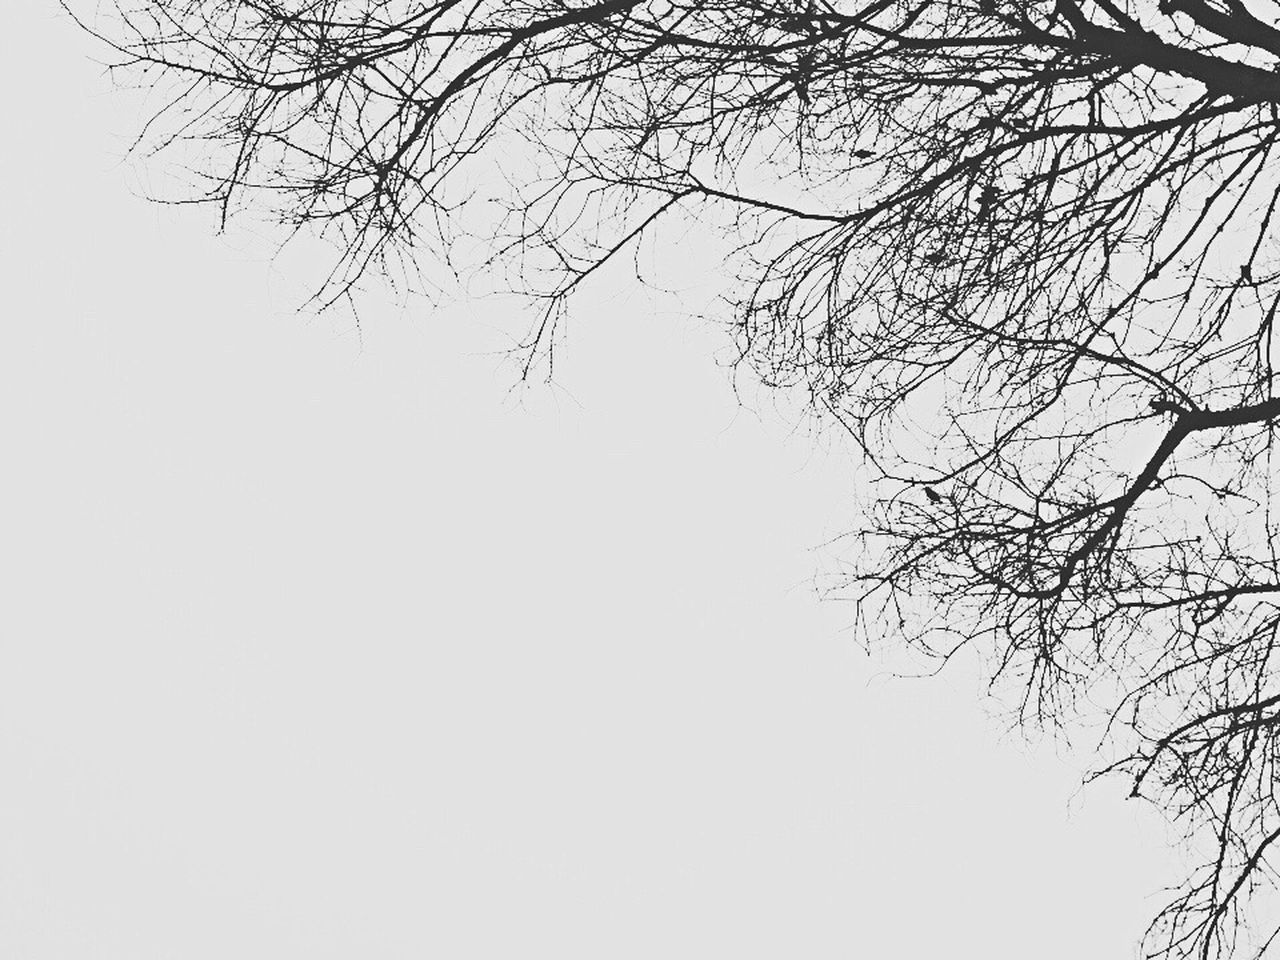 Blackandwhite Black And White Black & White Blackandwhite Photography Black And White Photography Copy Space Clear Sky Nature Bare Tree Branch Tree Low Angle View Beauty In Nature Tranquility Day No People Outdoors Scenics Sky Wintertime Winter Rome Italy